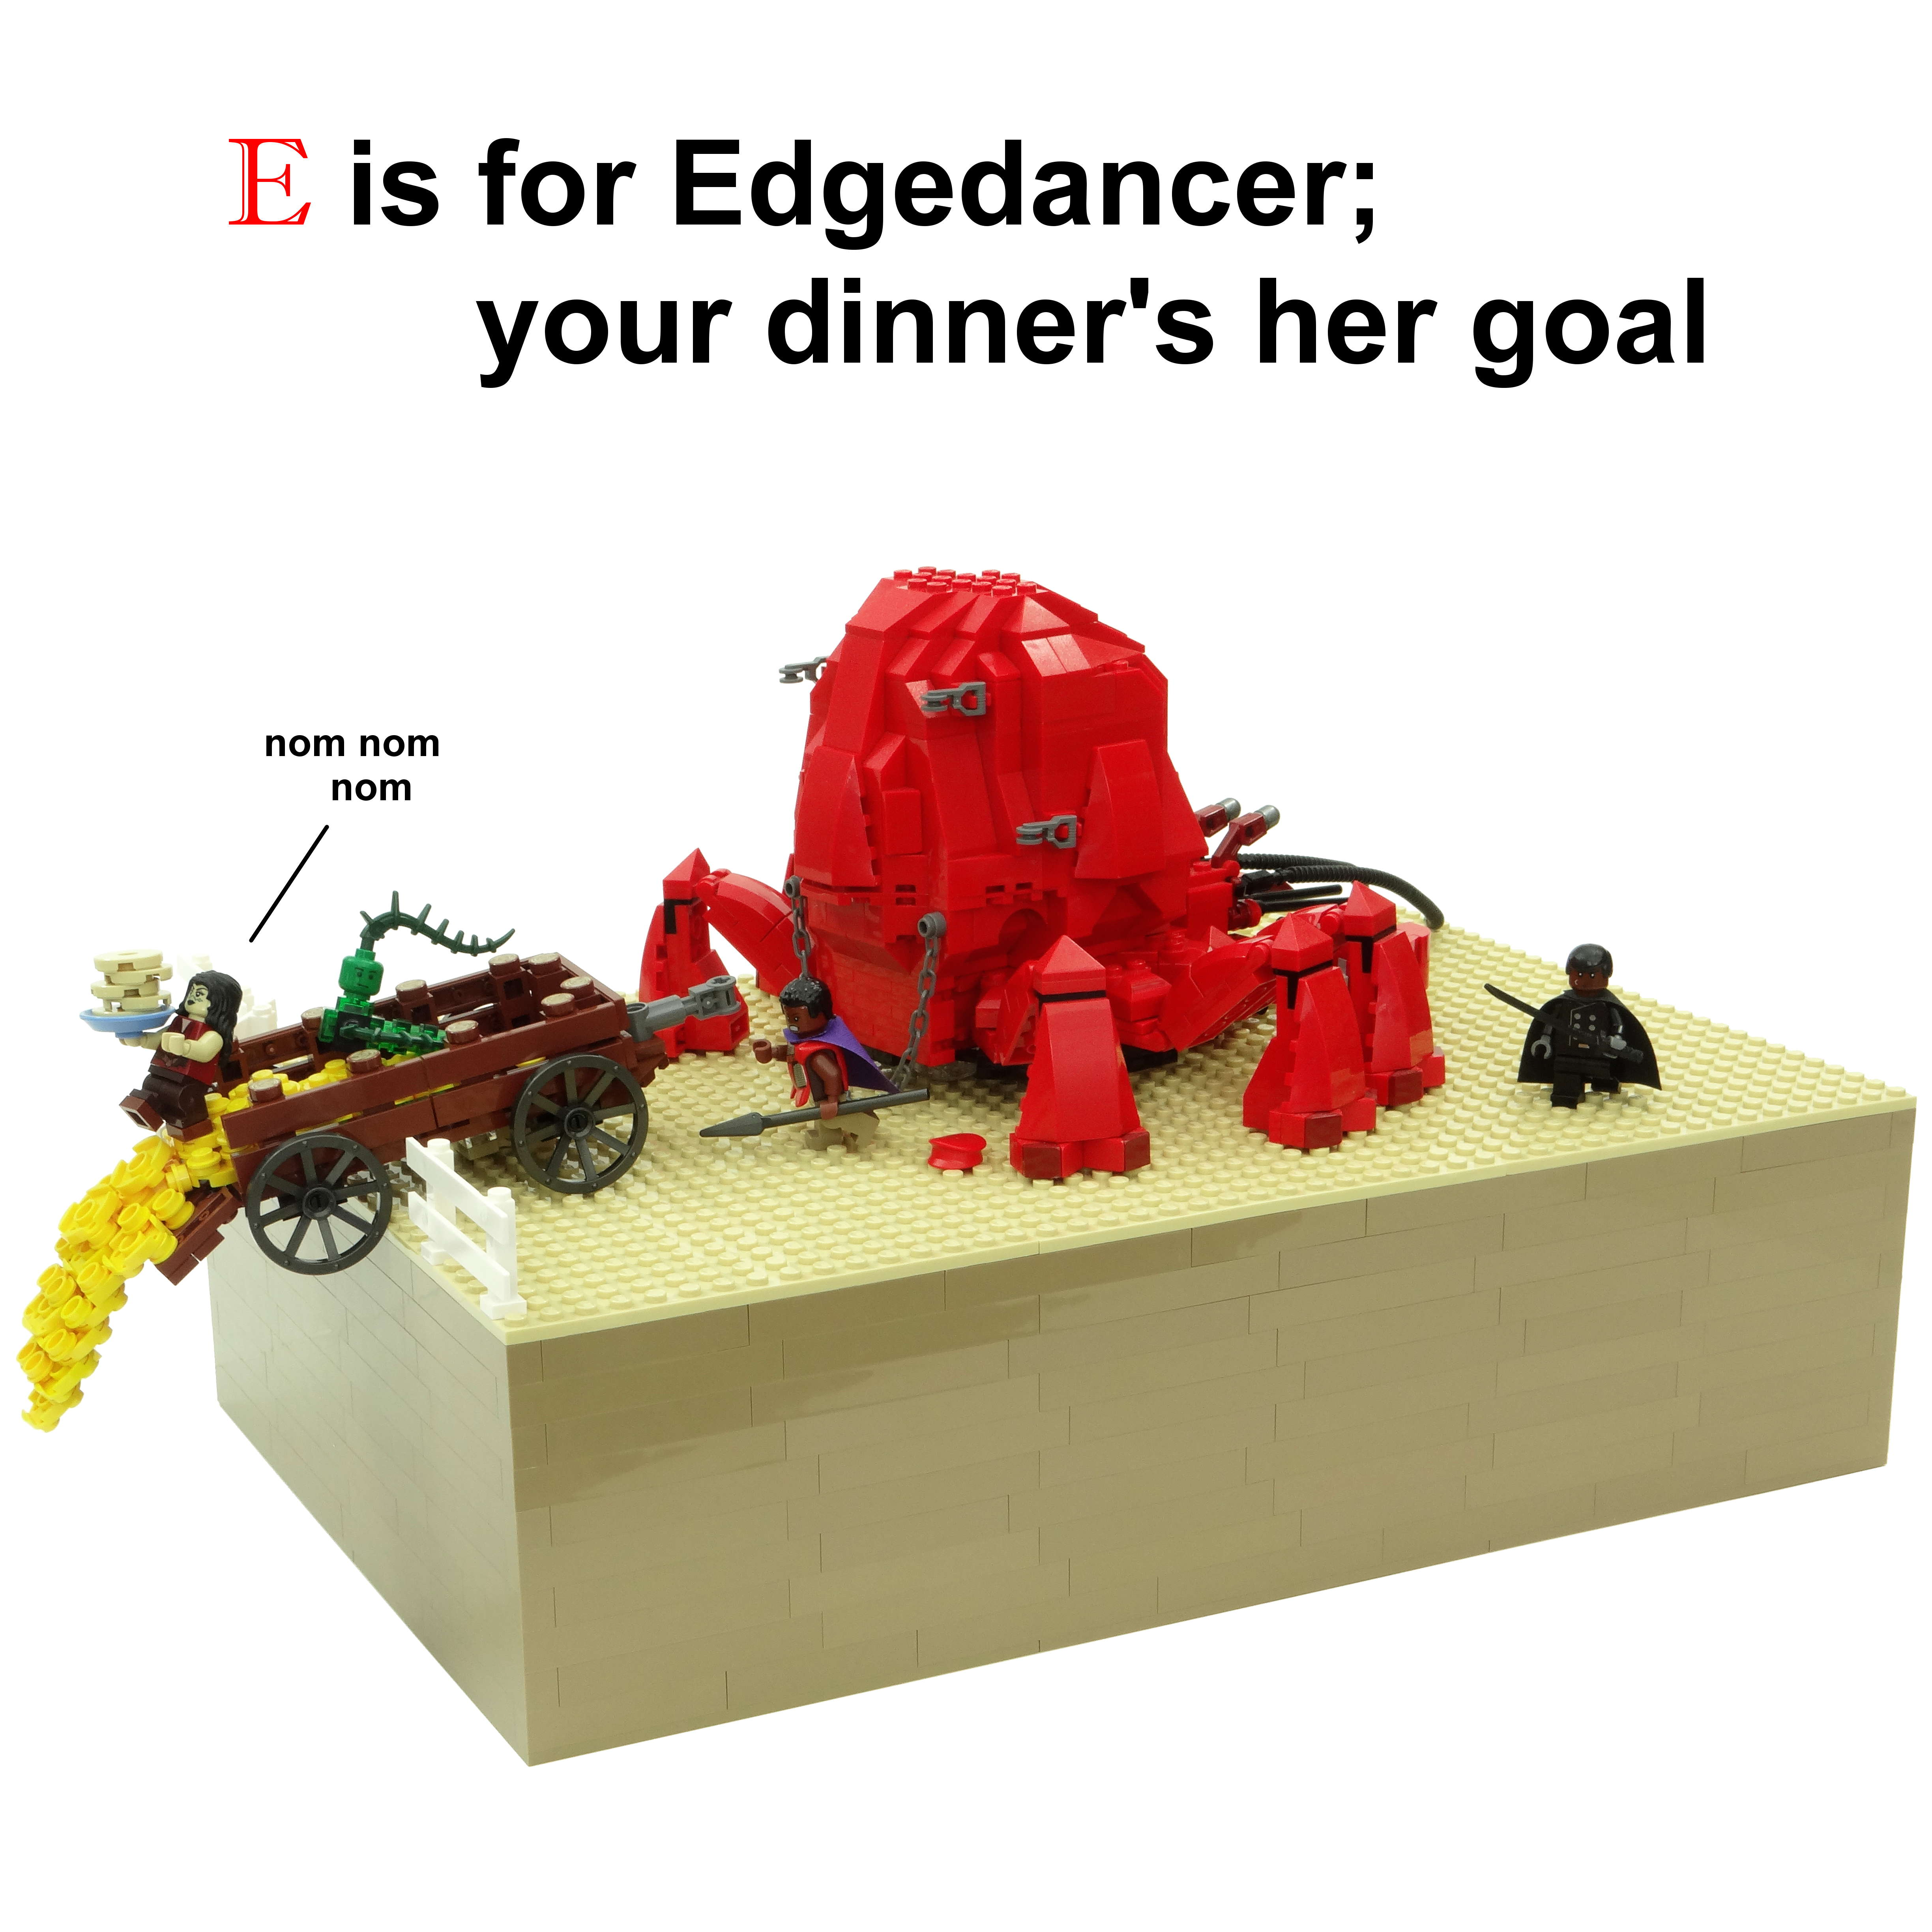 E-is-for-Edgedancer